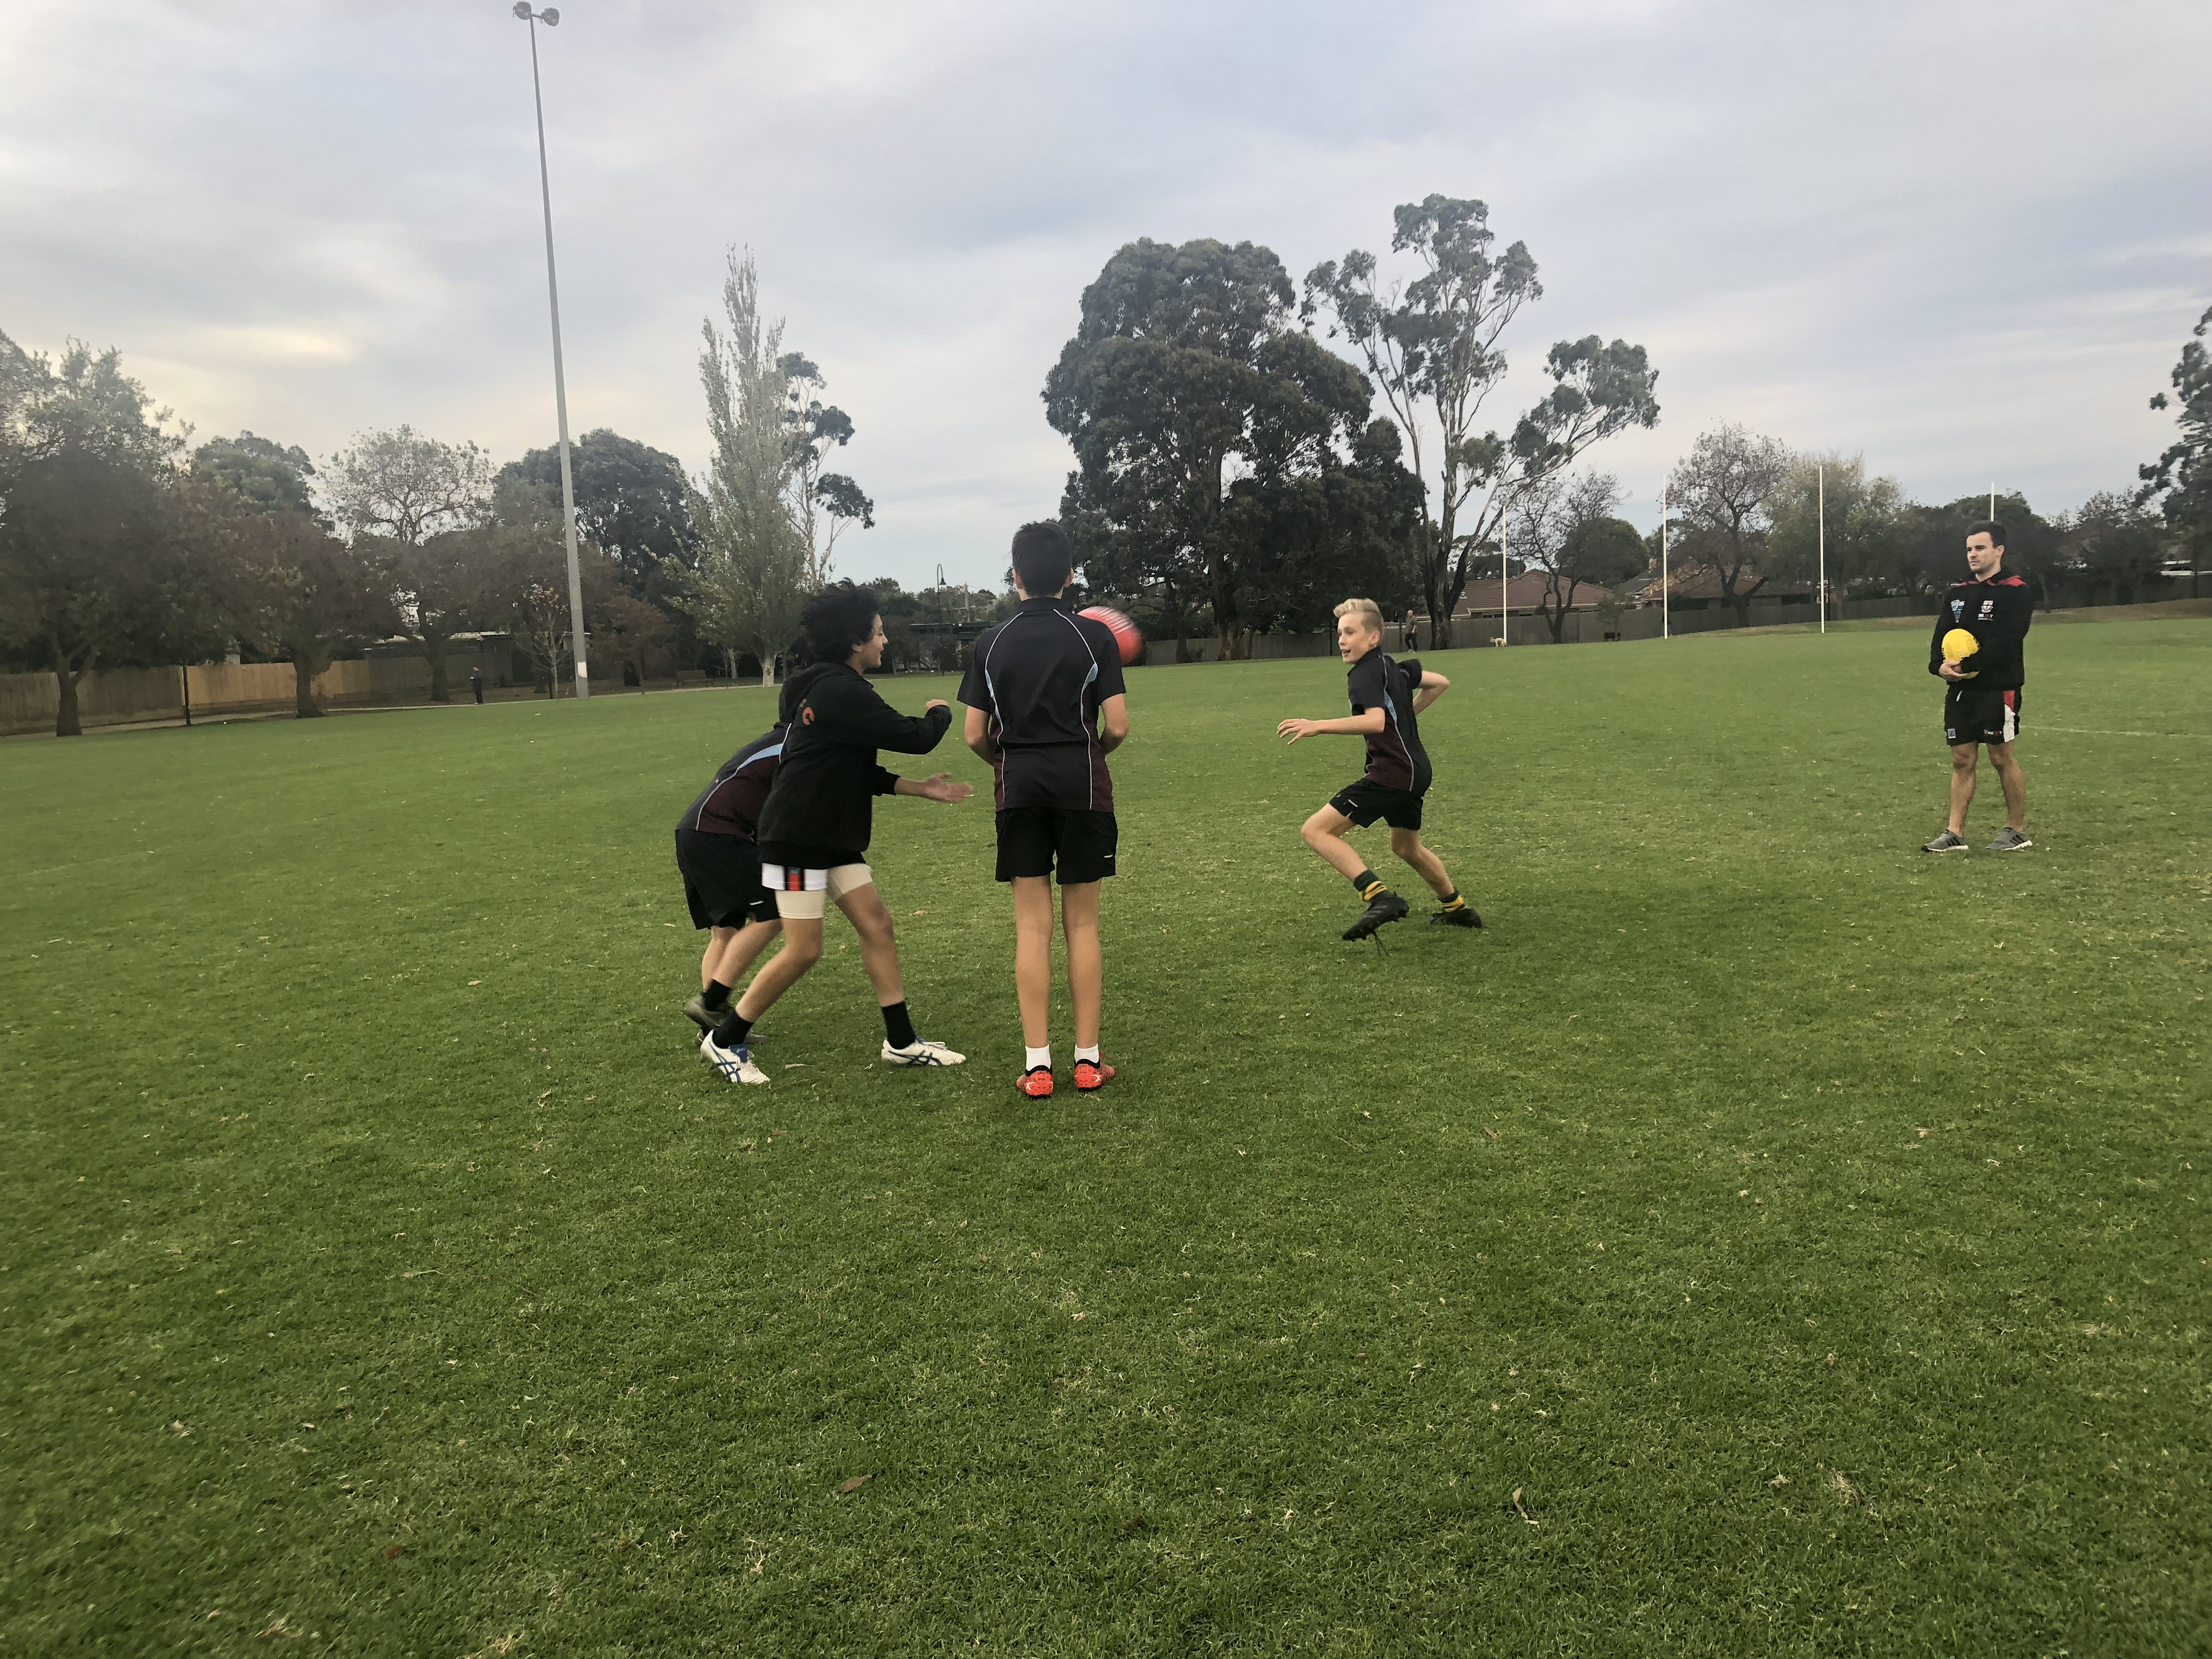 https://www.bentleighsc.vic.edu.au/uploaded_files/media/footy_in_action_2.jpg